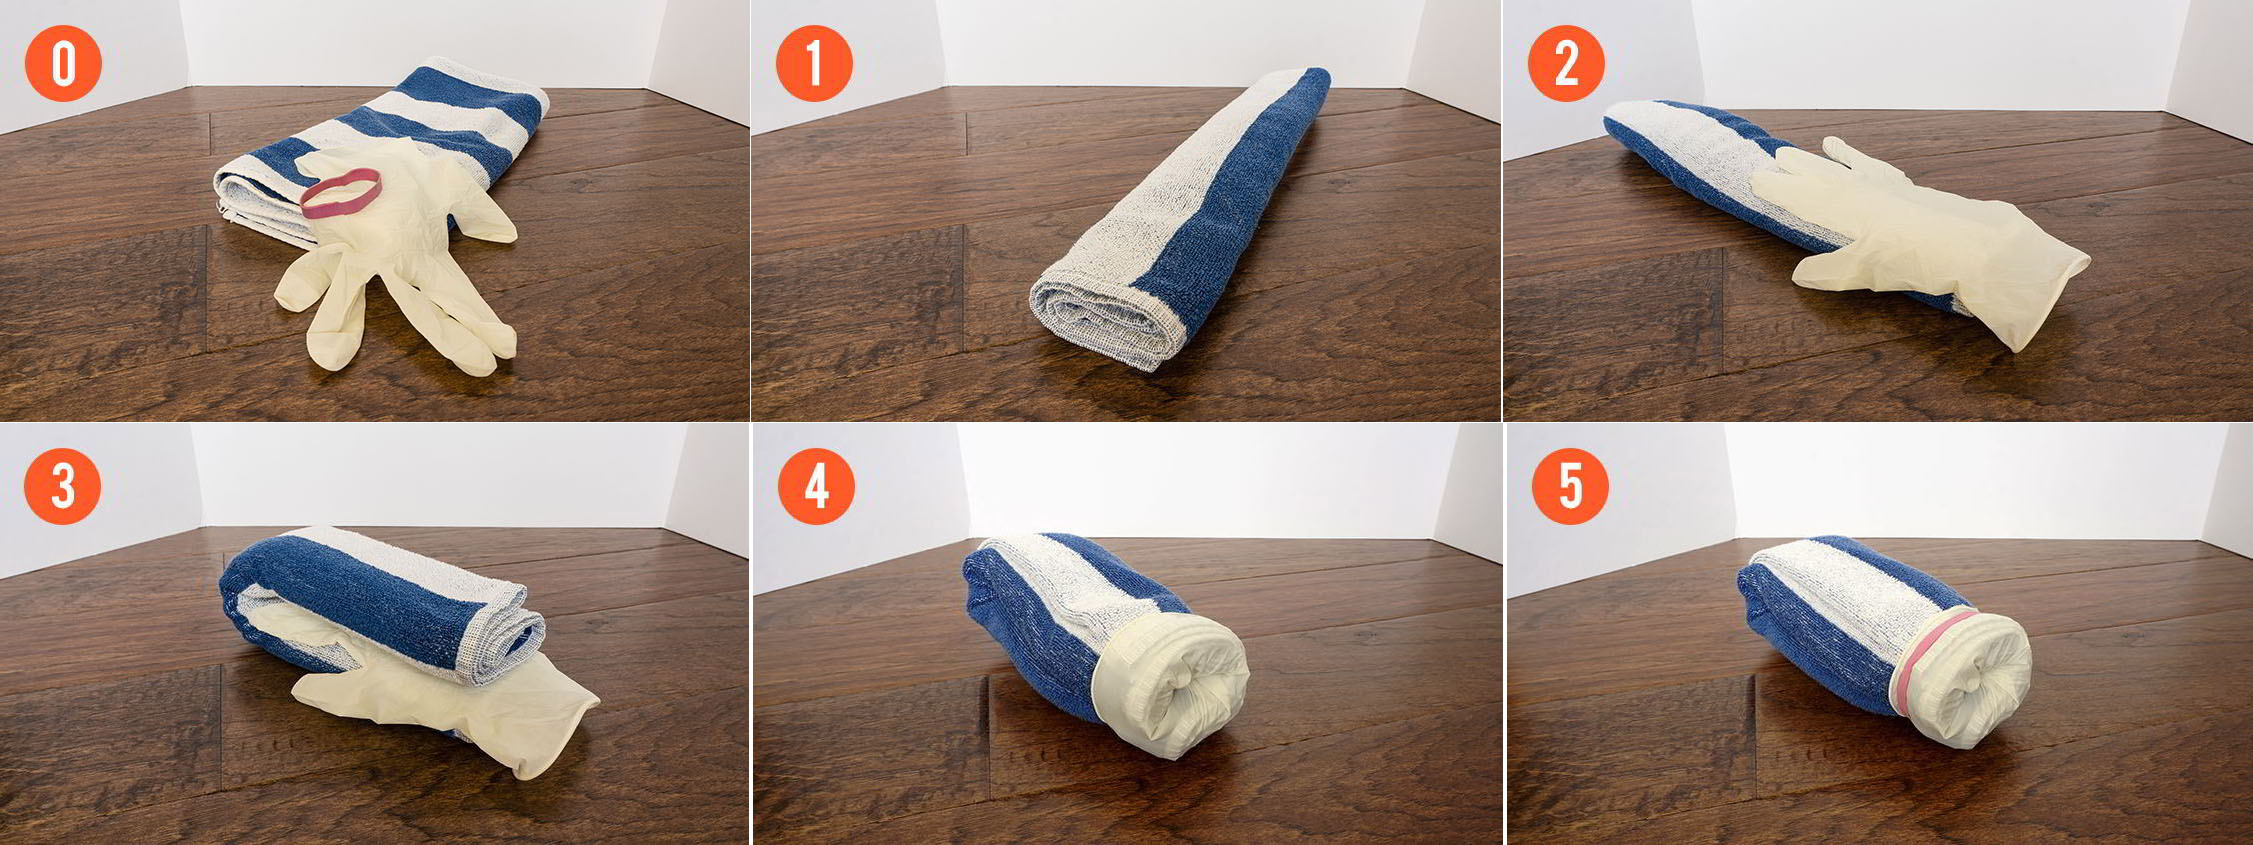 homemade-folded-towel-fleshlight-step-0